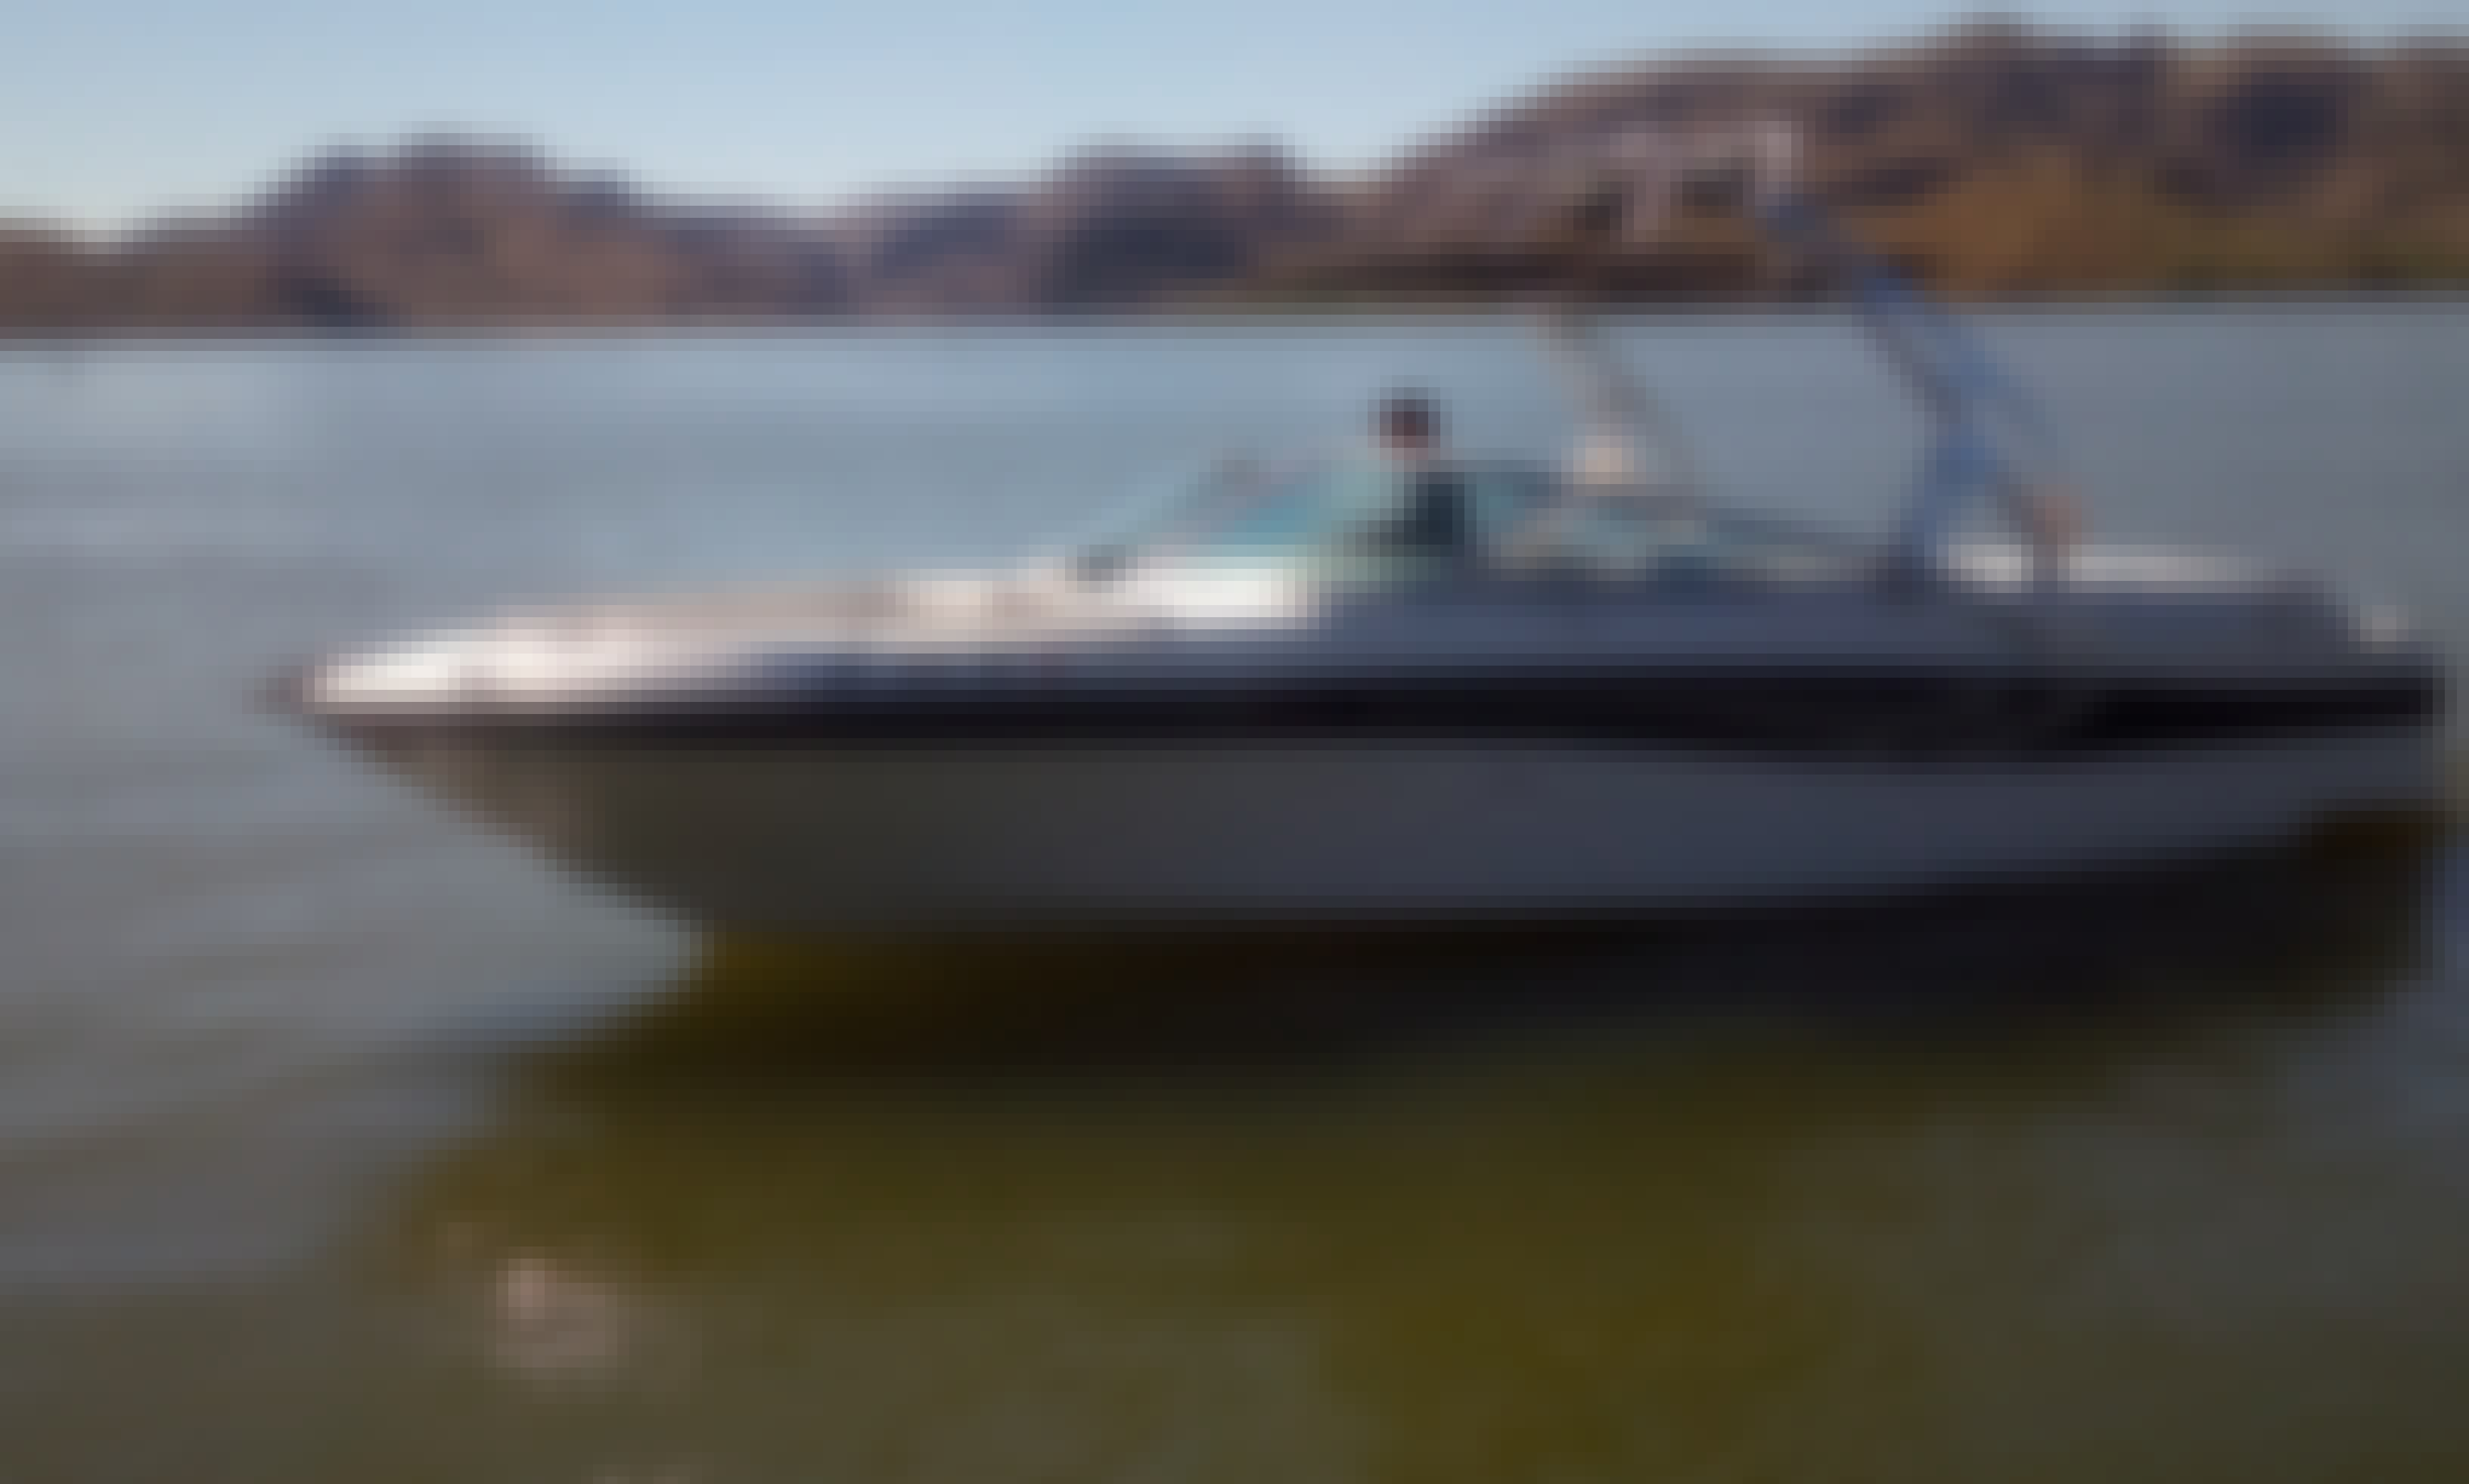 Rent 26' Powerboat for 11 People at Lake Pleasant